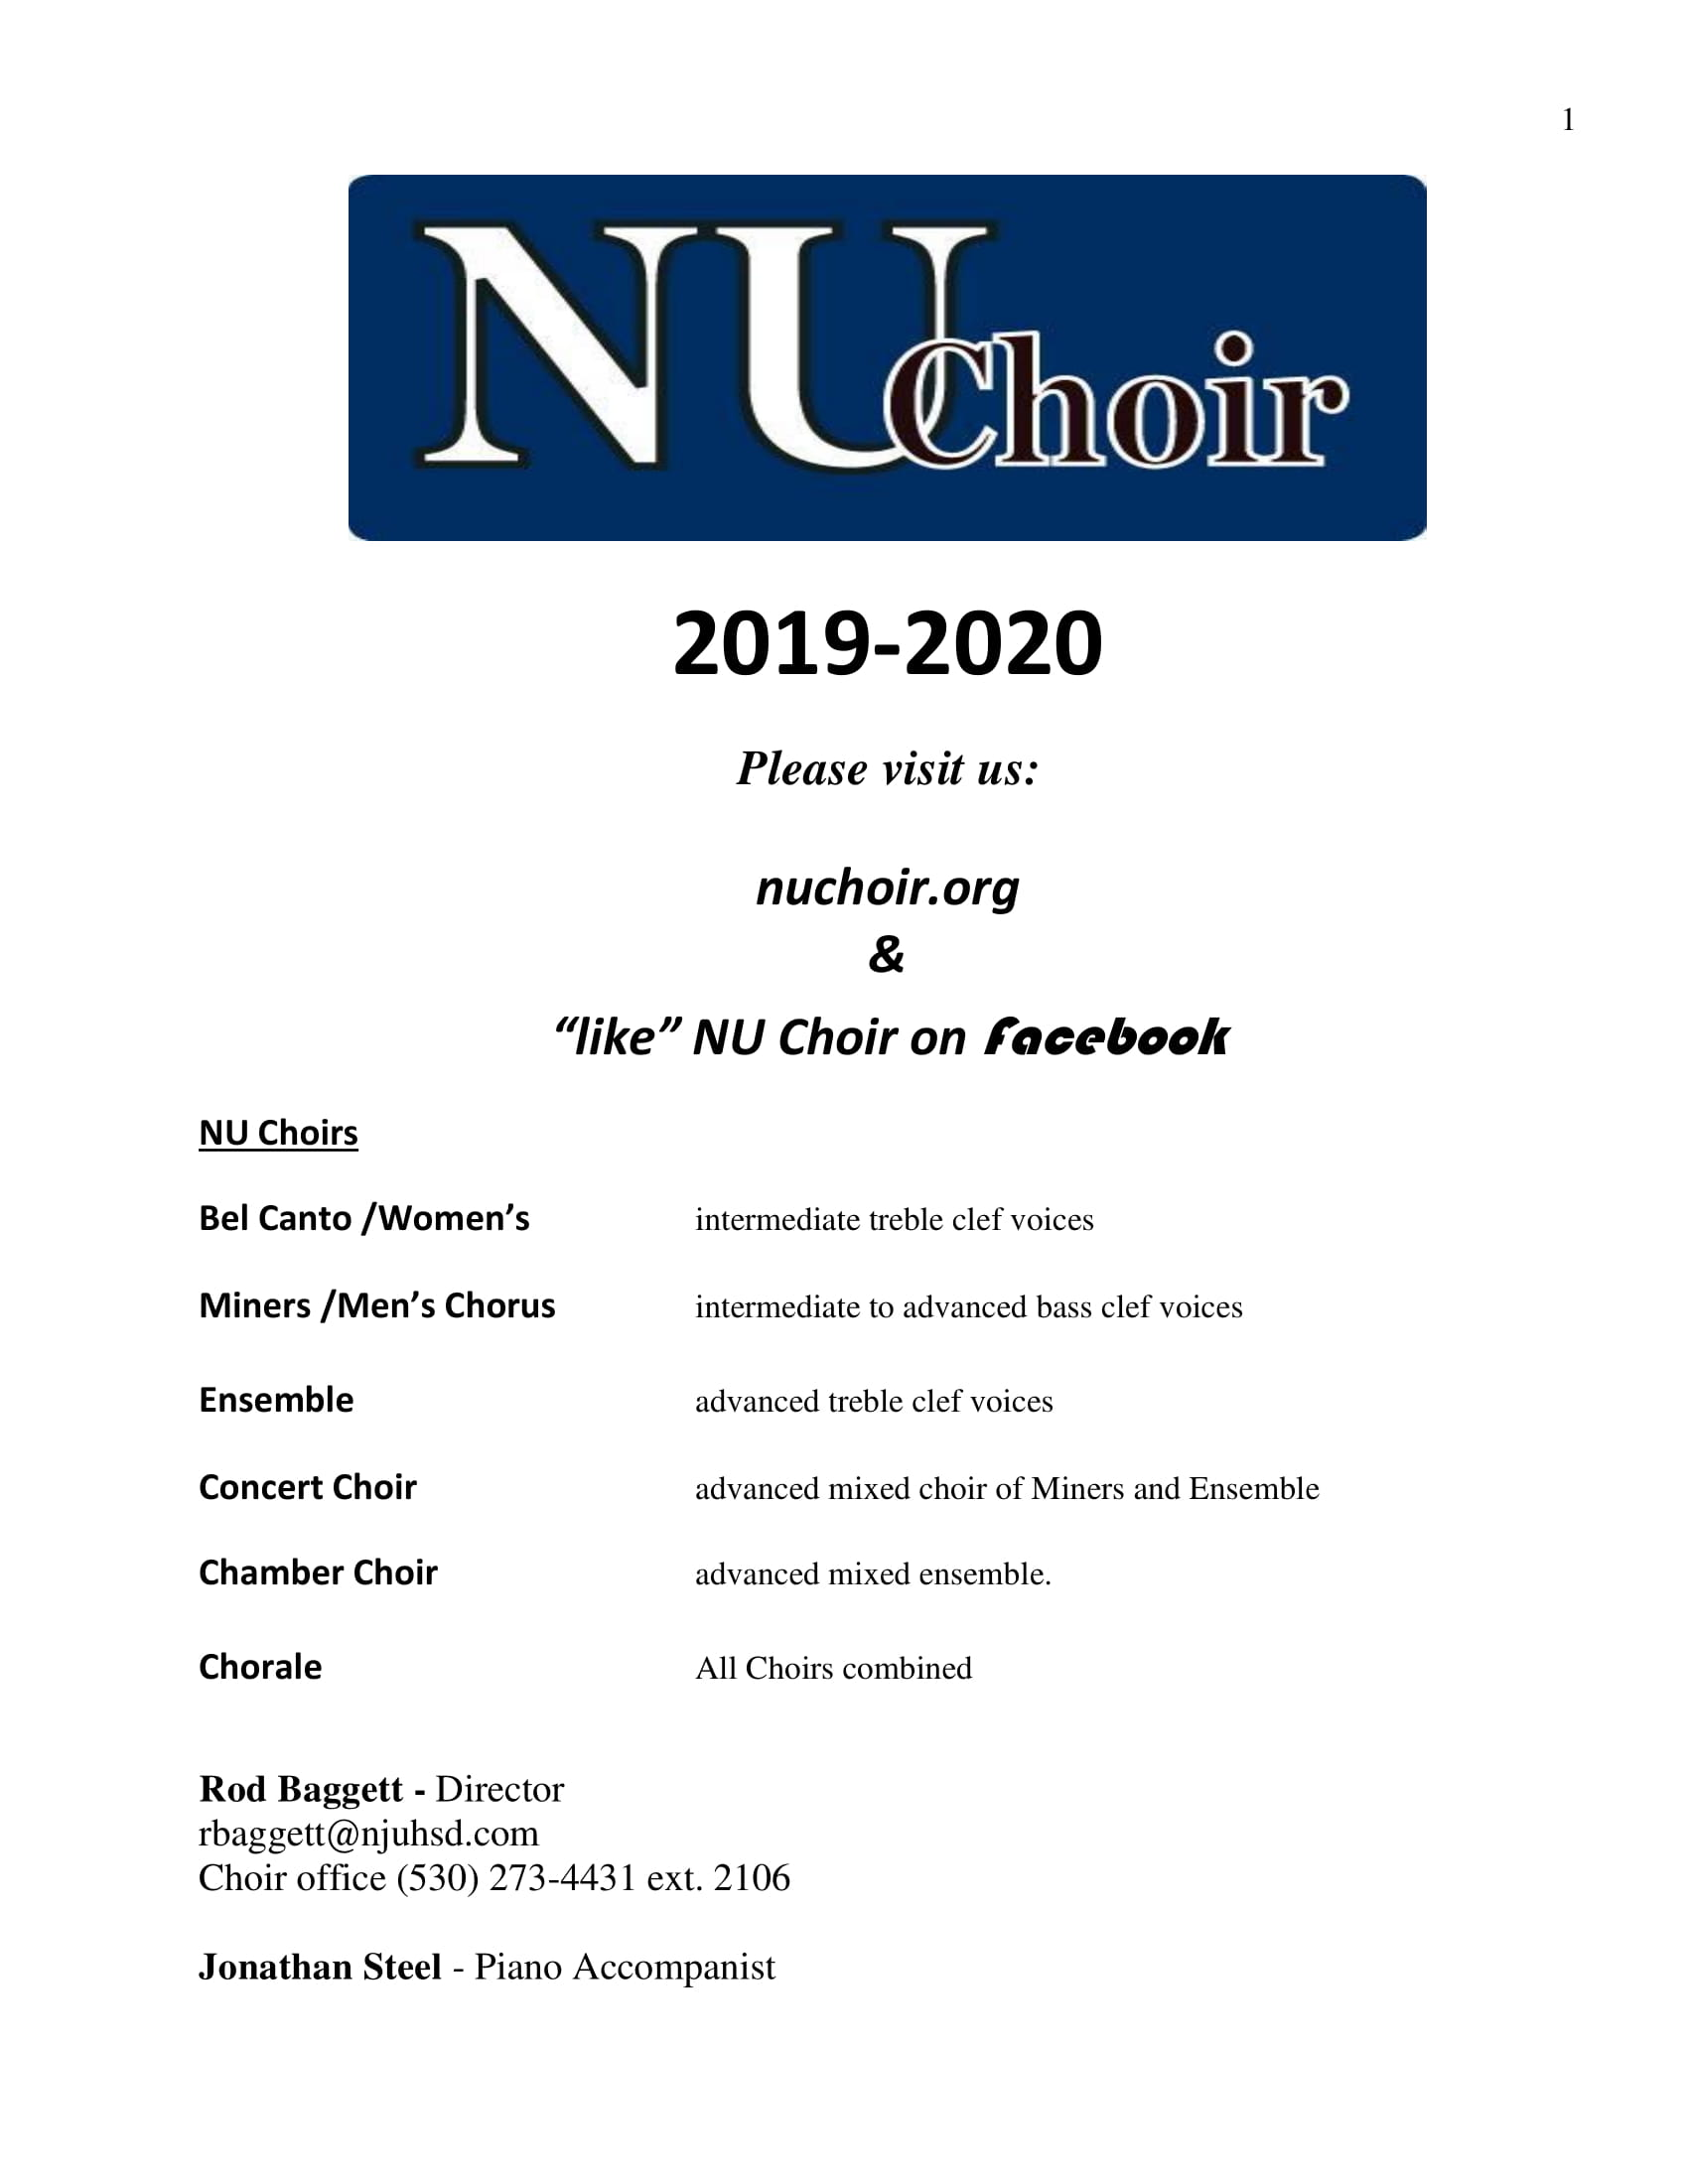 Syllabus All Choirs 19-20-converted-1.jpg